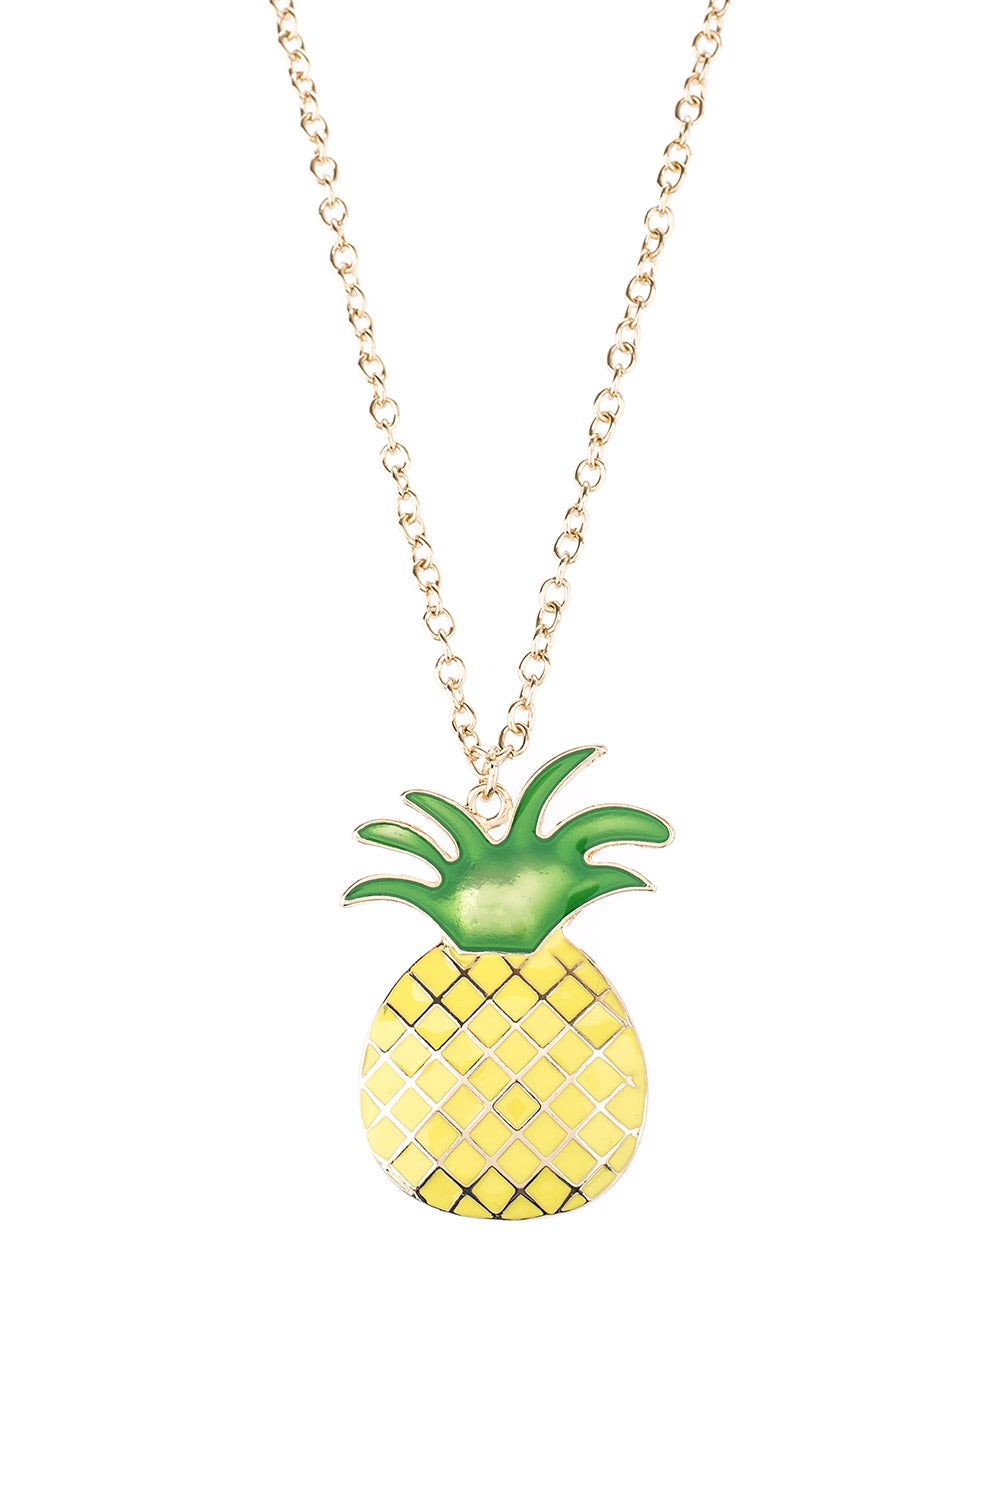 Type 1 Summer Pineapple Necklace